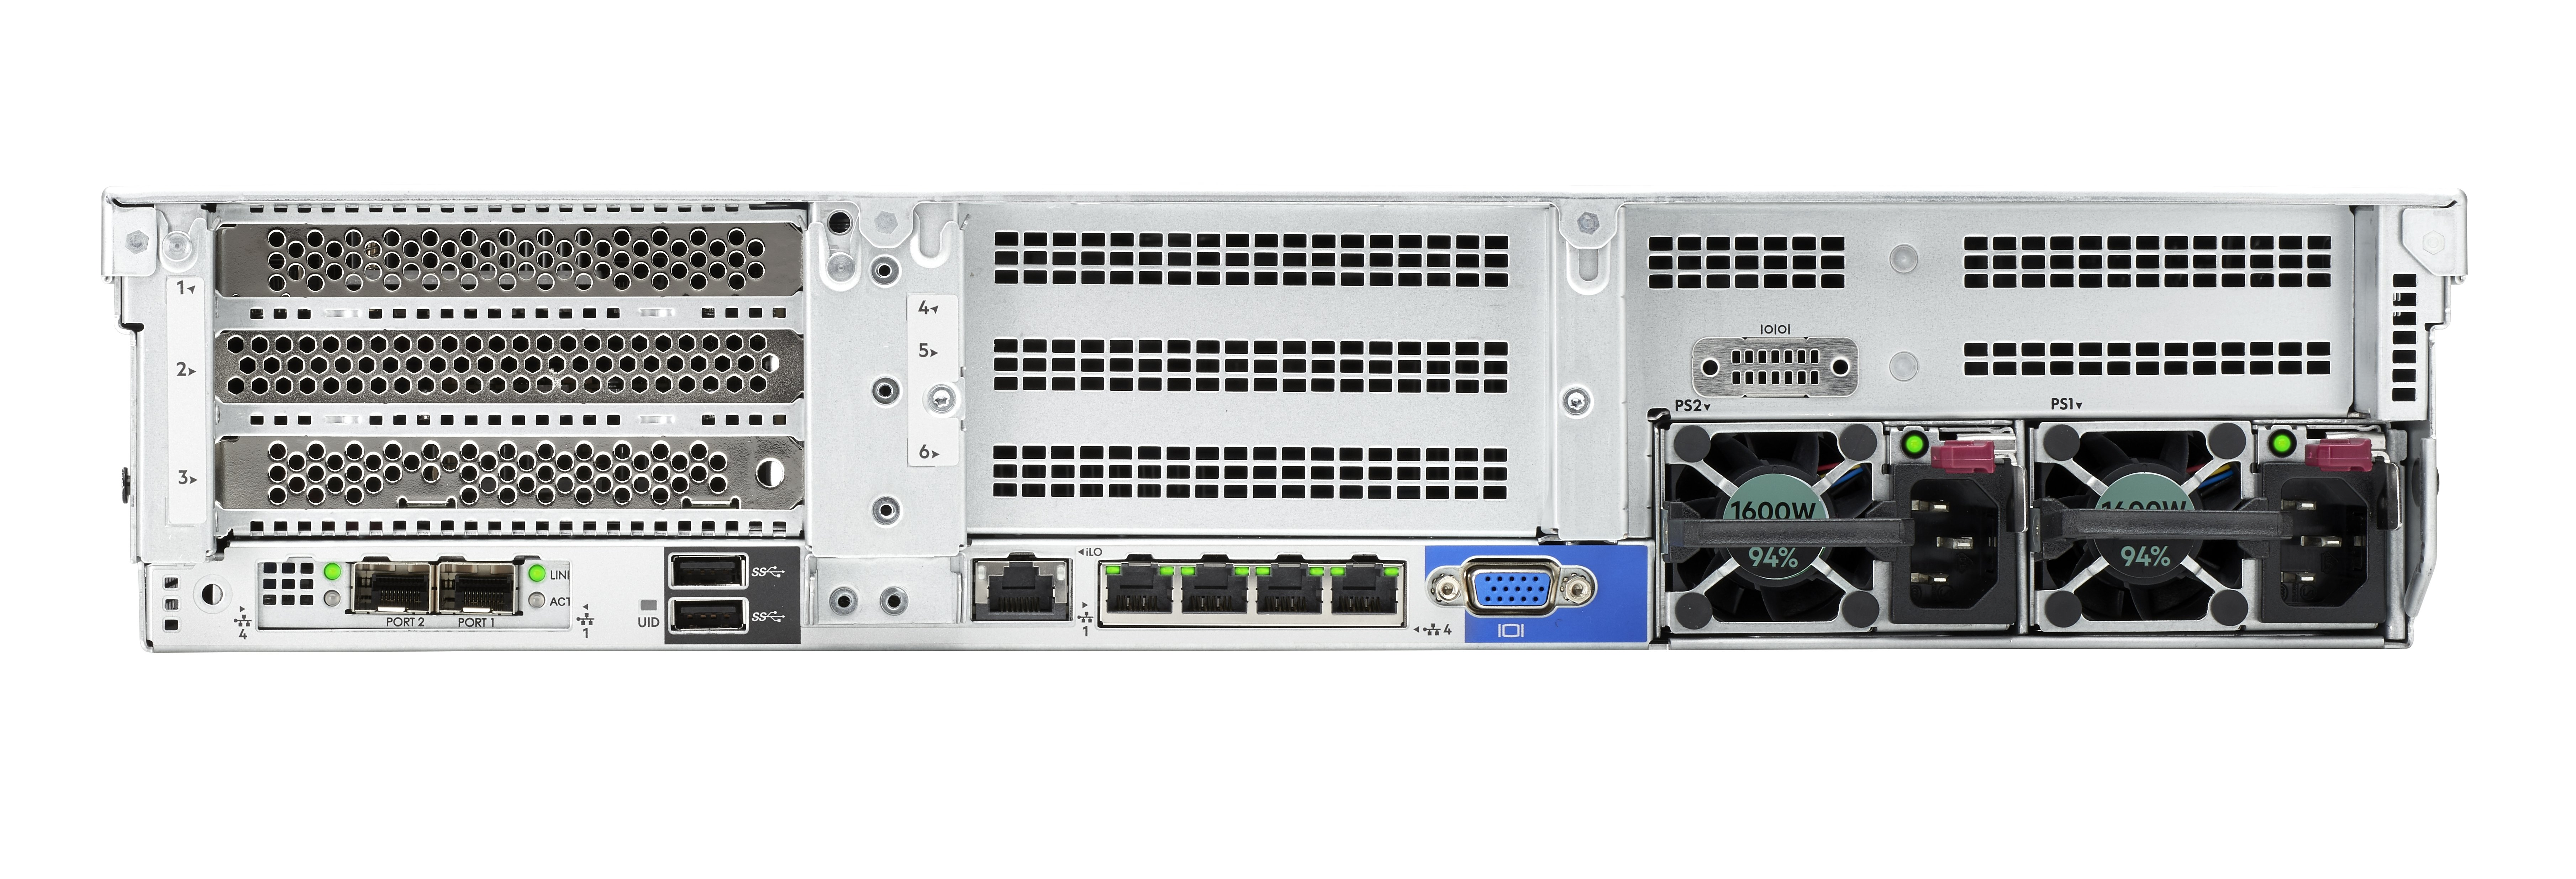 HPE ProLiant DL380 Gen10 Entry - rack-mountable - Xeon